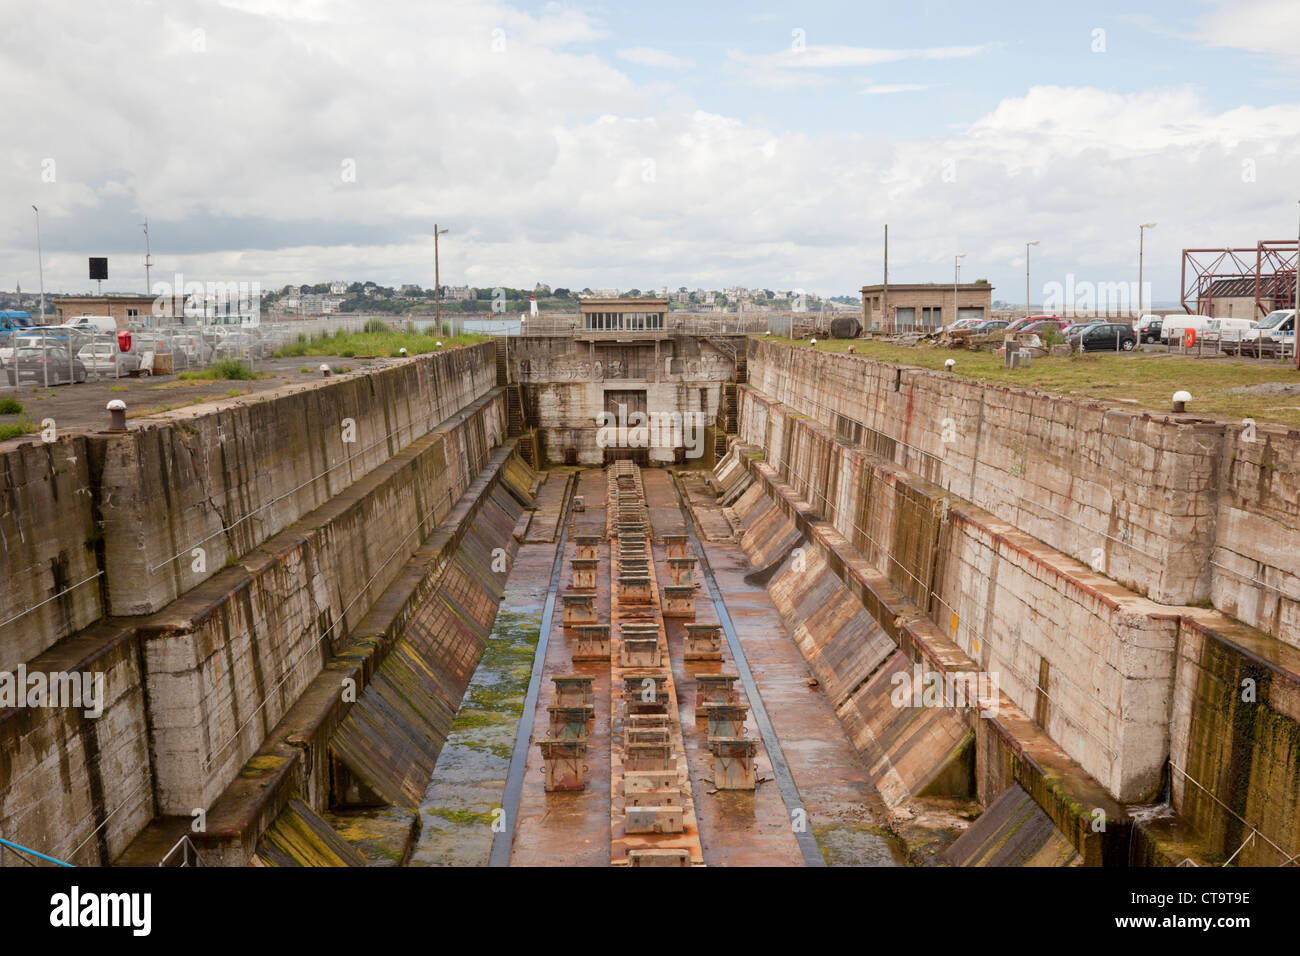 Souvent Dry Dock, St Malo, France Stock Photo, Royalty Free Image  IP37